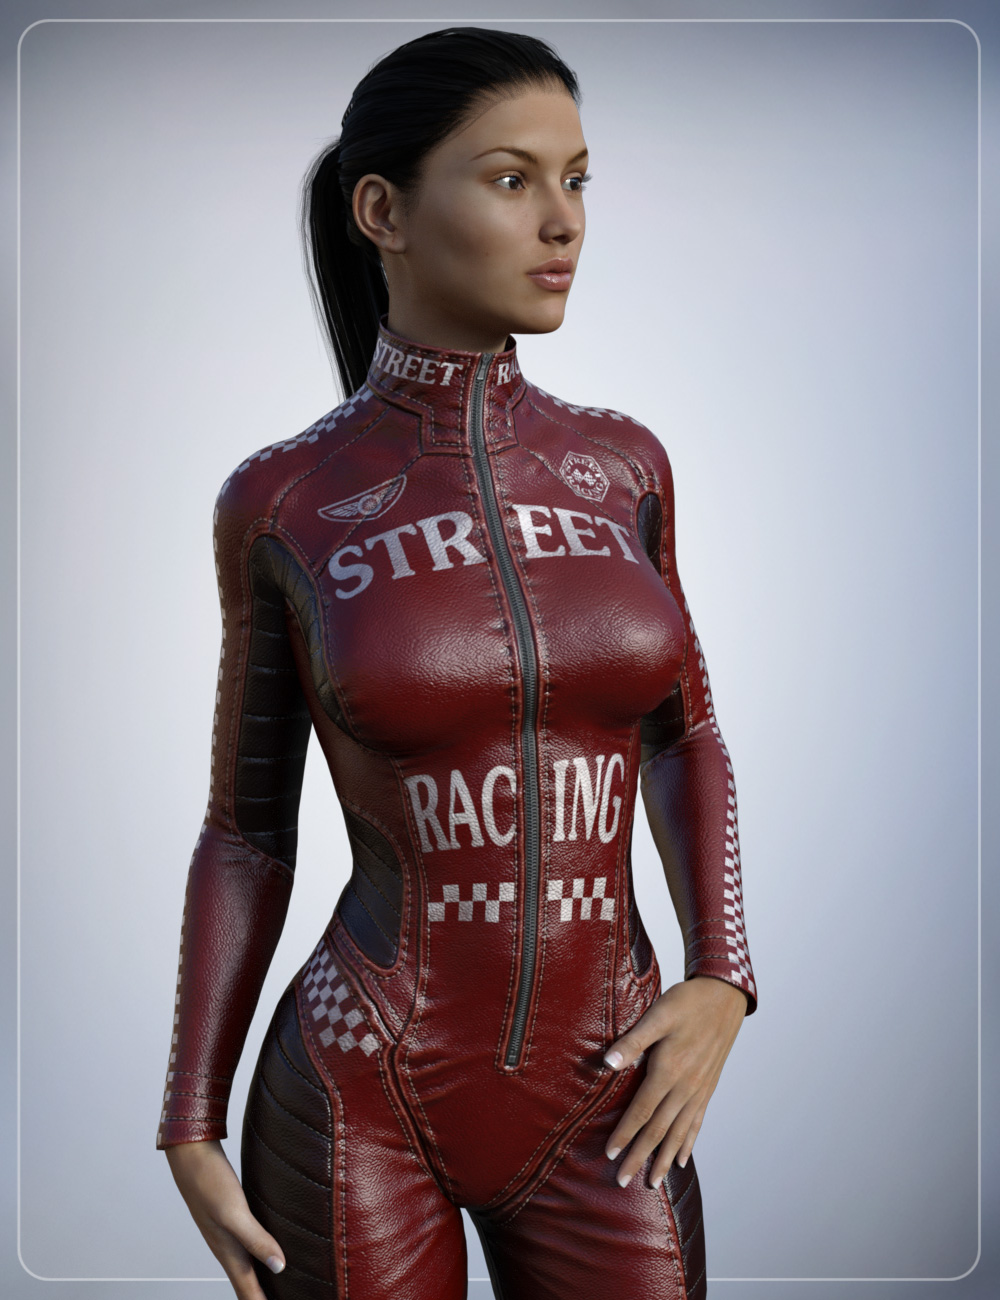 Leather Body Suit Iray Texture Expansion by: smay, 3D Models by Daz 3D